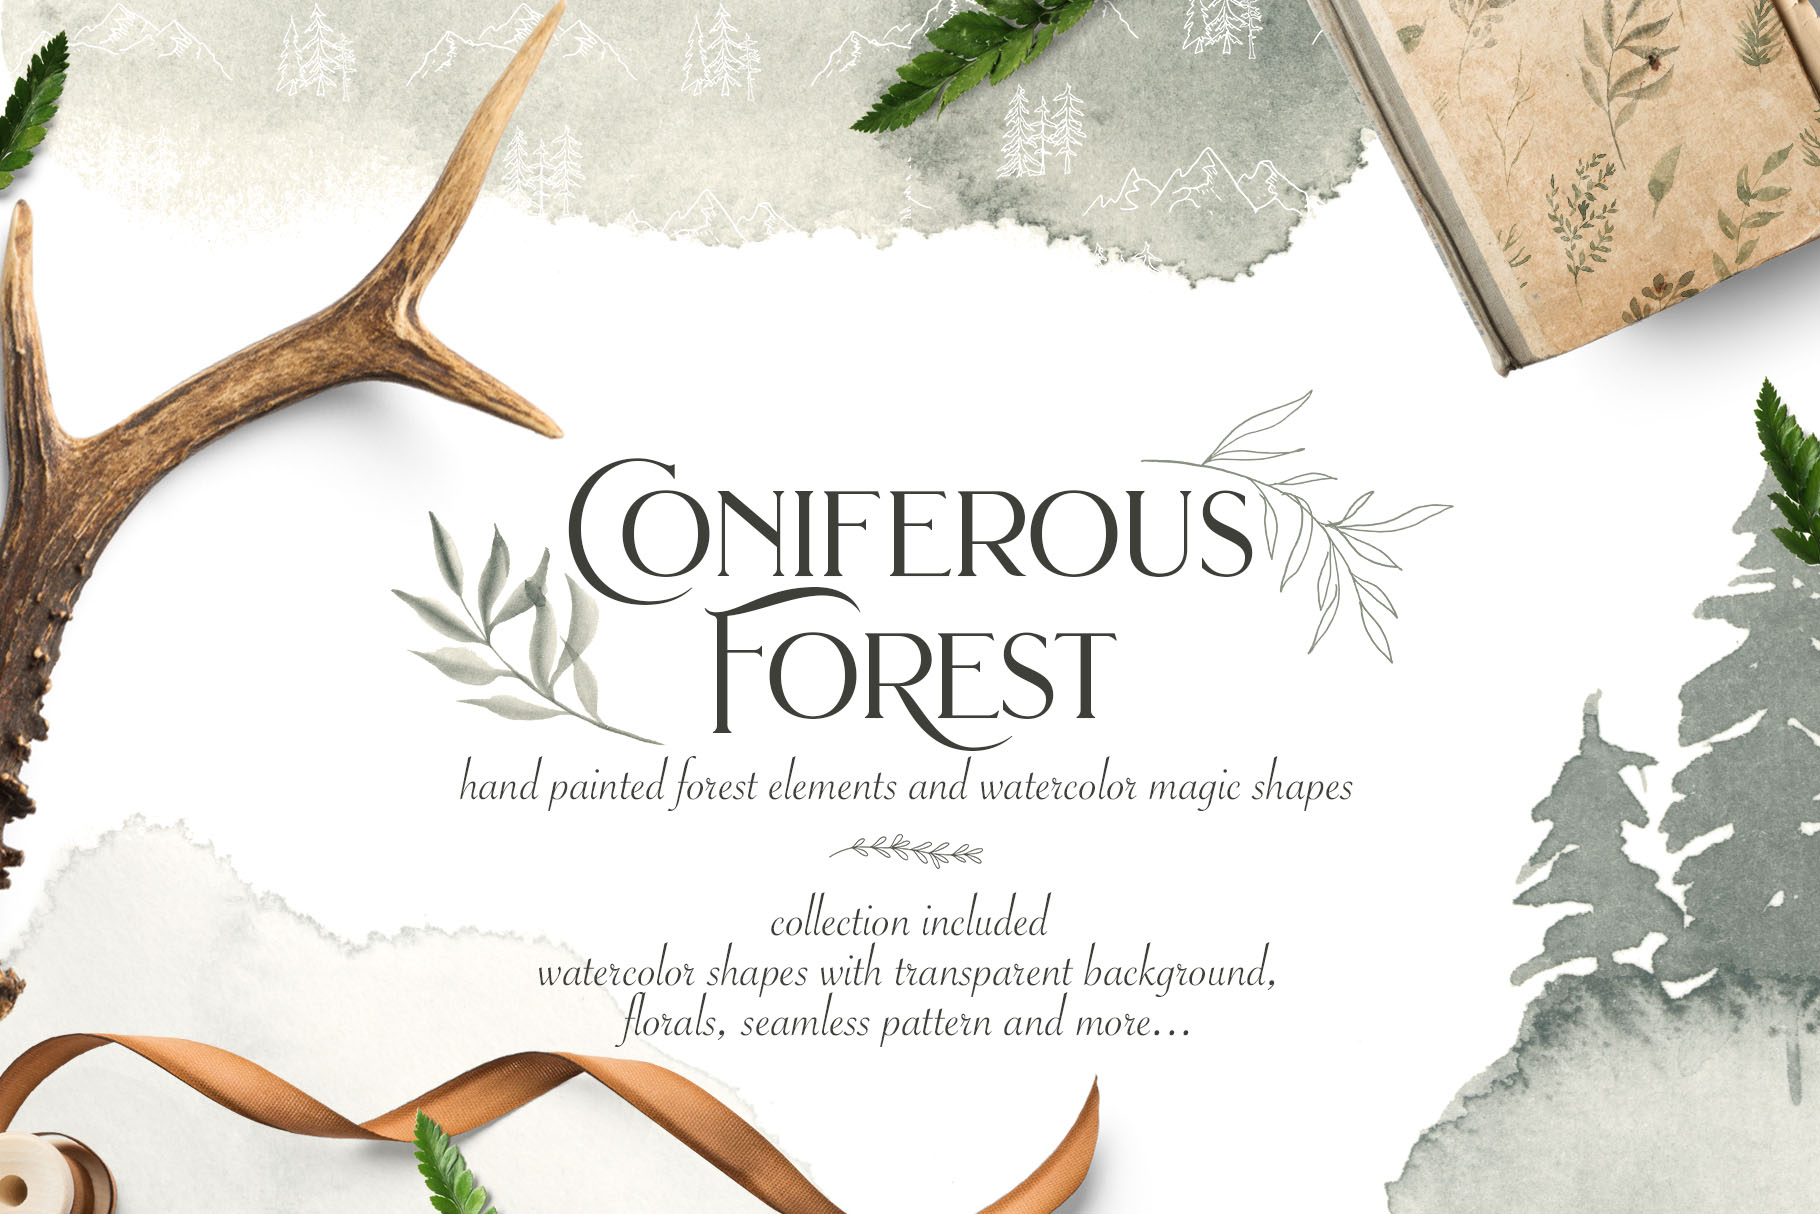 Coniferous Forest Collection